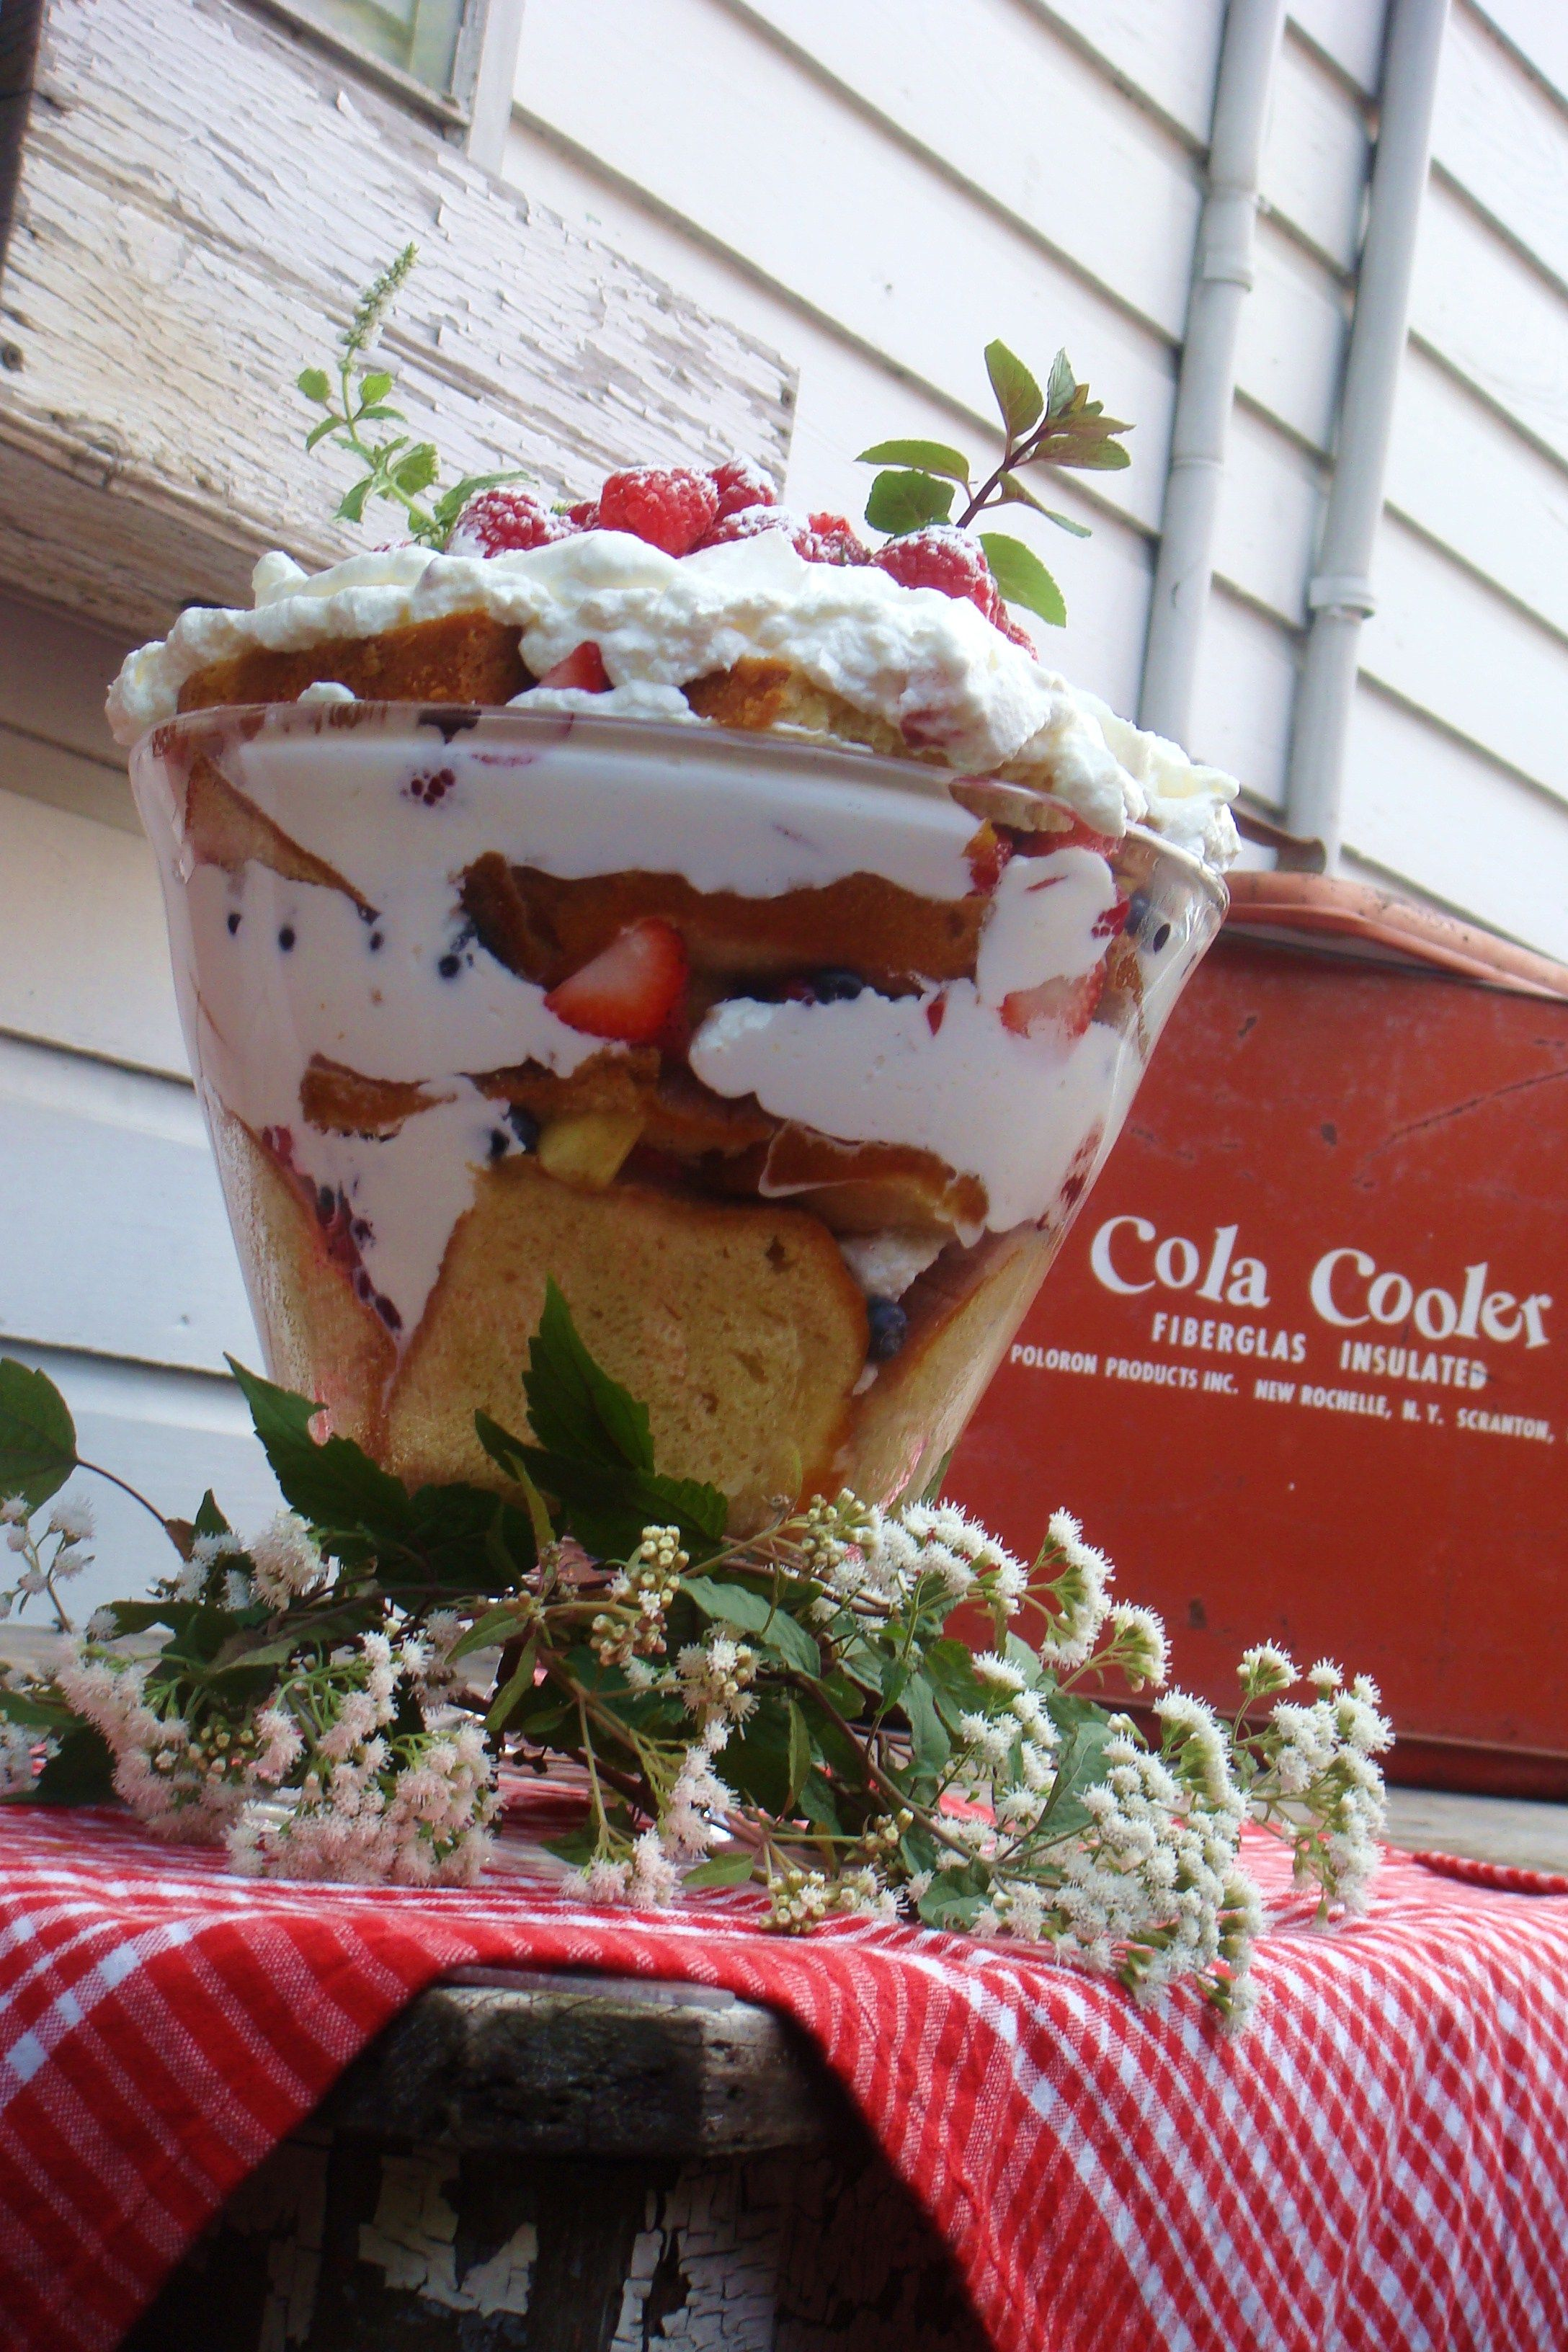 Charlene S Kitchen And Catering By Charlene Alexandria Va Baking Sweets Trifle Dessert Recipes